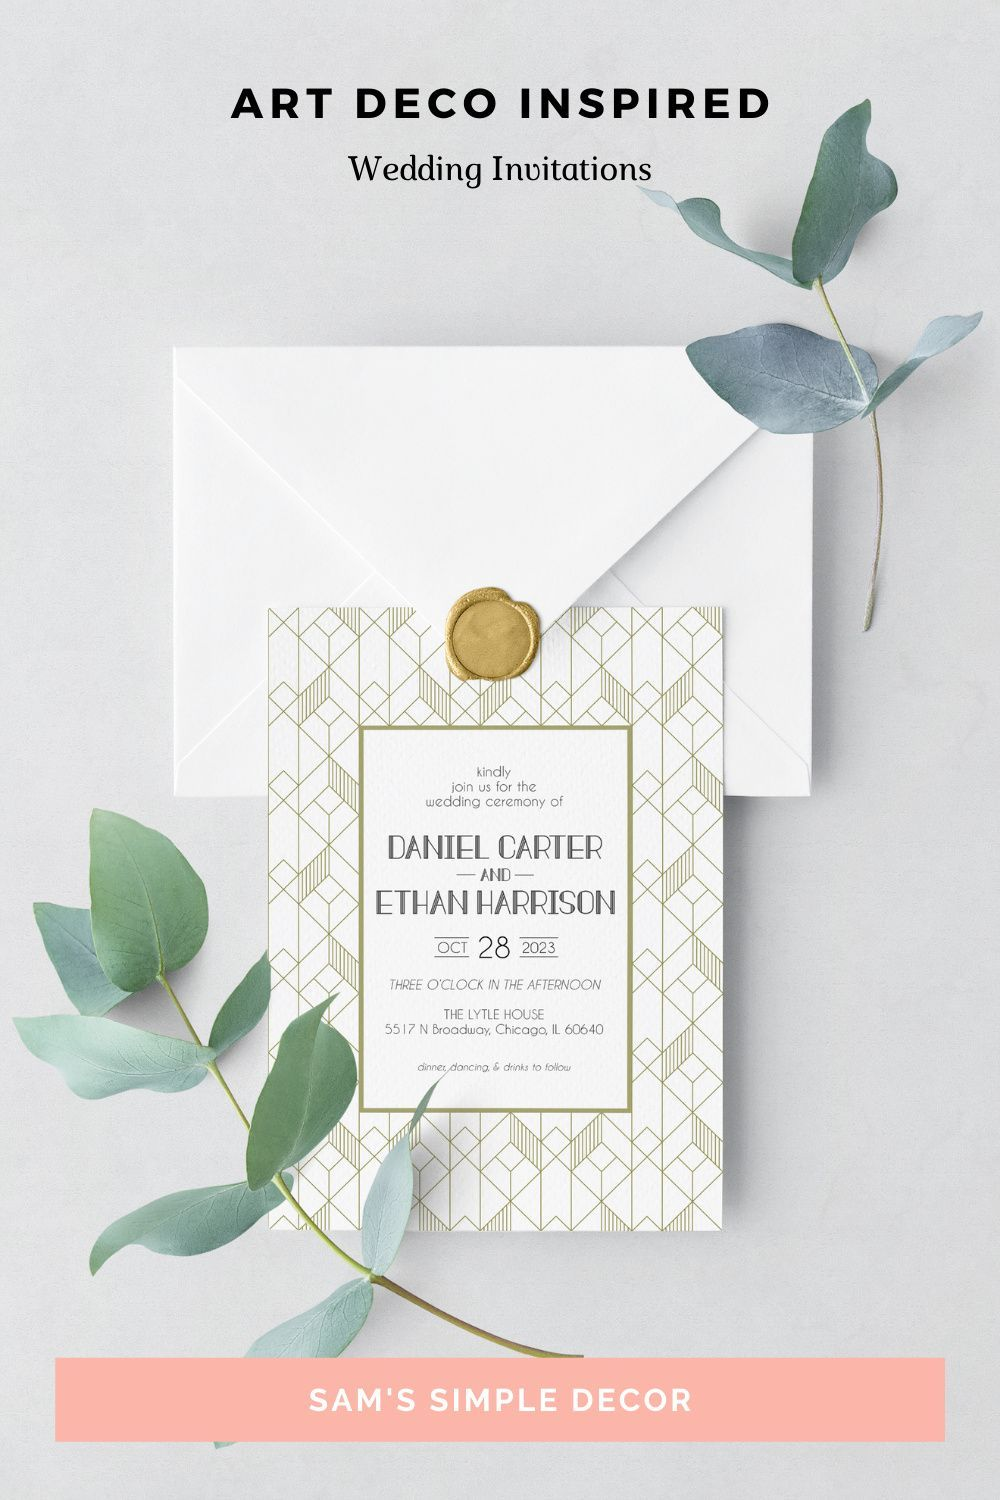 Make your stationary pop with our custom wedding invitations! Our beautiful wedding invitations will stand out above the rest of your guests mail. Click the link to shop the above wedding invitations and more wedding suite invites. Subscribe to get 15% off your first order of your wedding annoucements! #WeddingCards #WeddingArt #ElegentInvitations